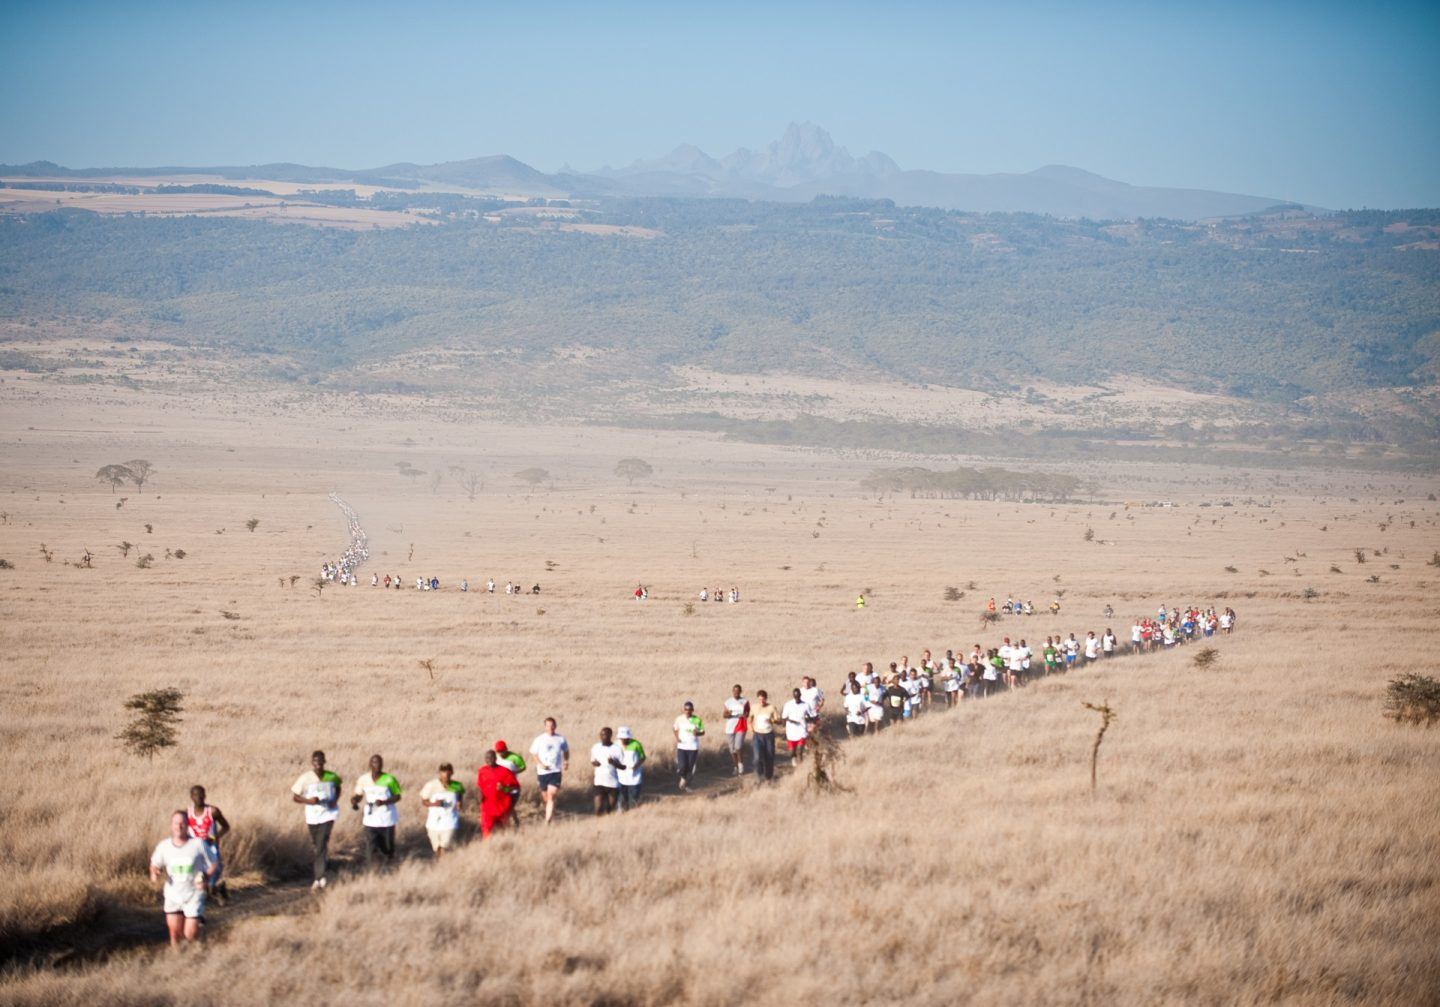 Safaricom Marathon Runners and Mount Kenya